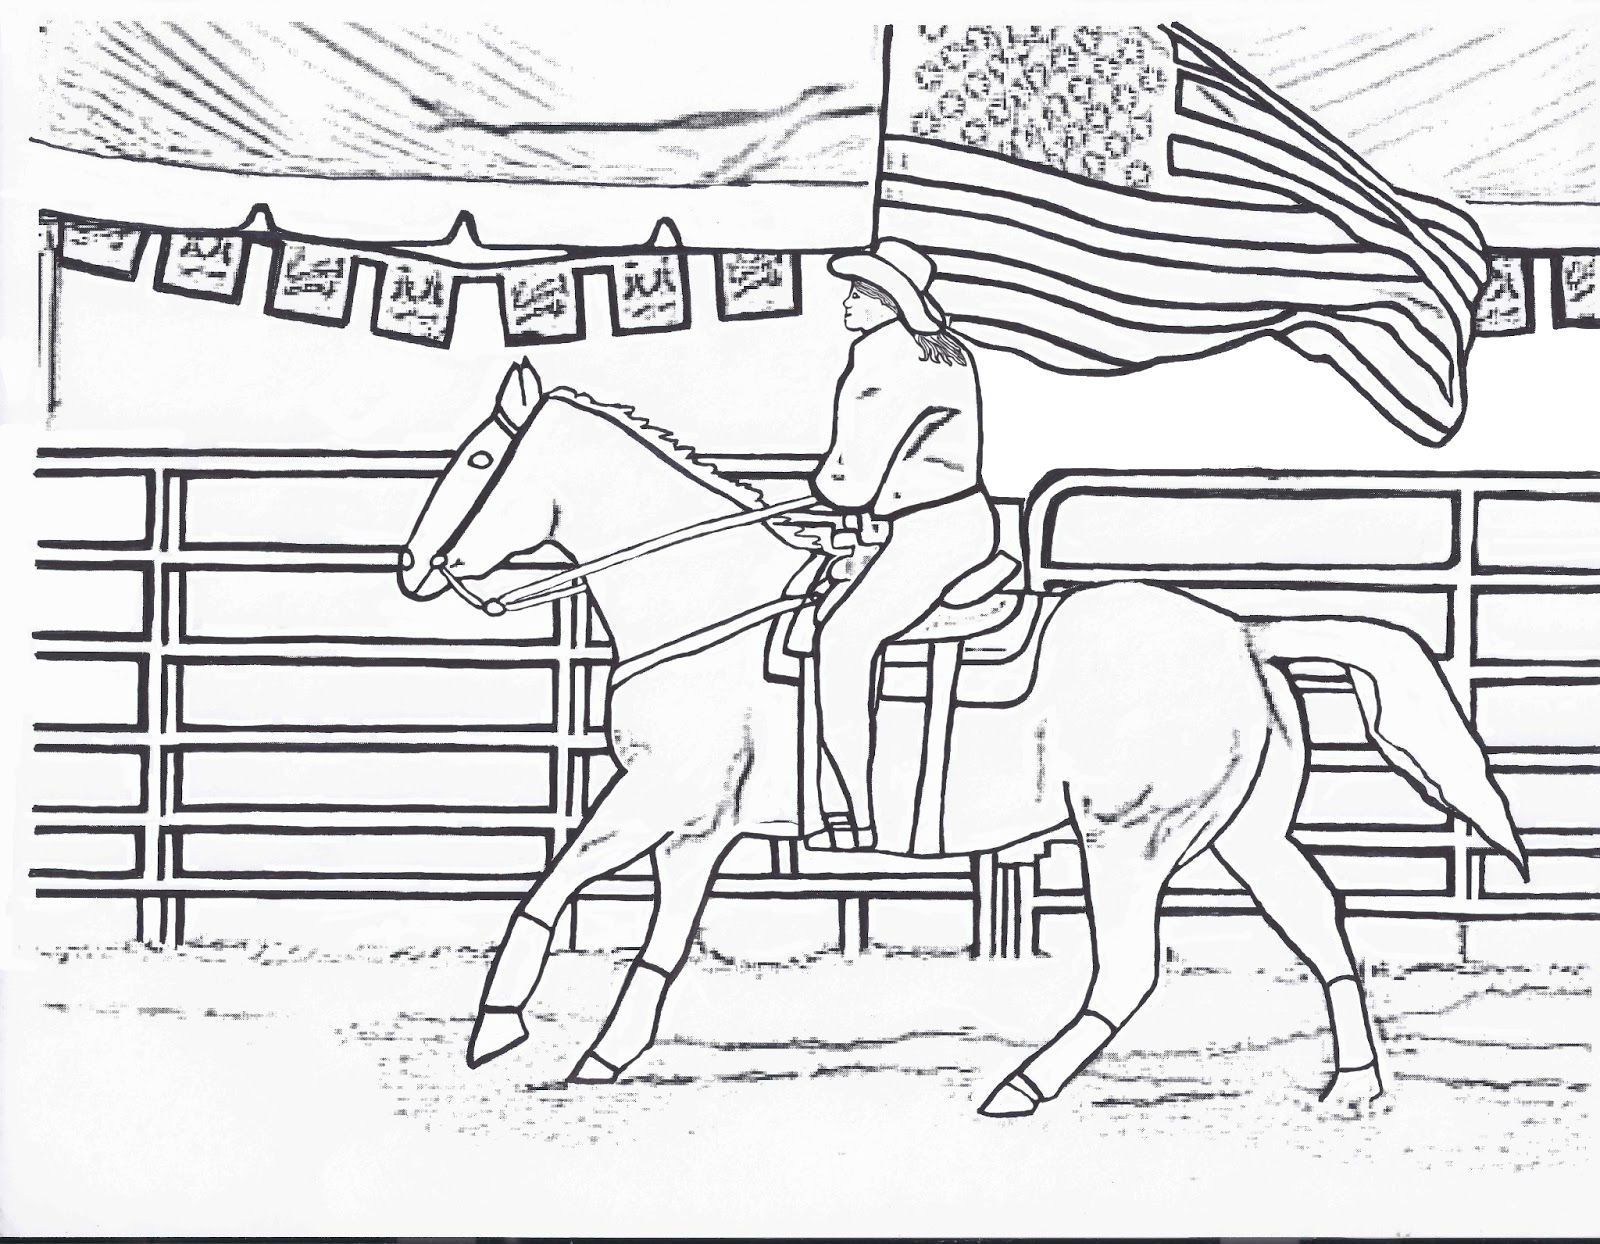 Clydesdale Horse Drawing at GetDrawings.com | Free for personal use ...